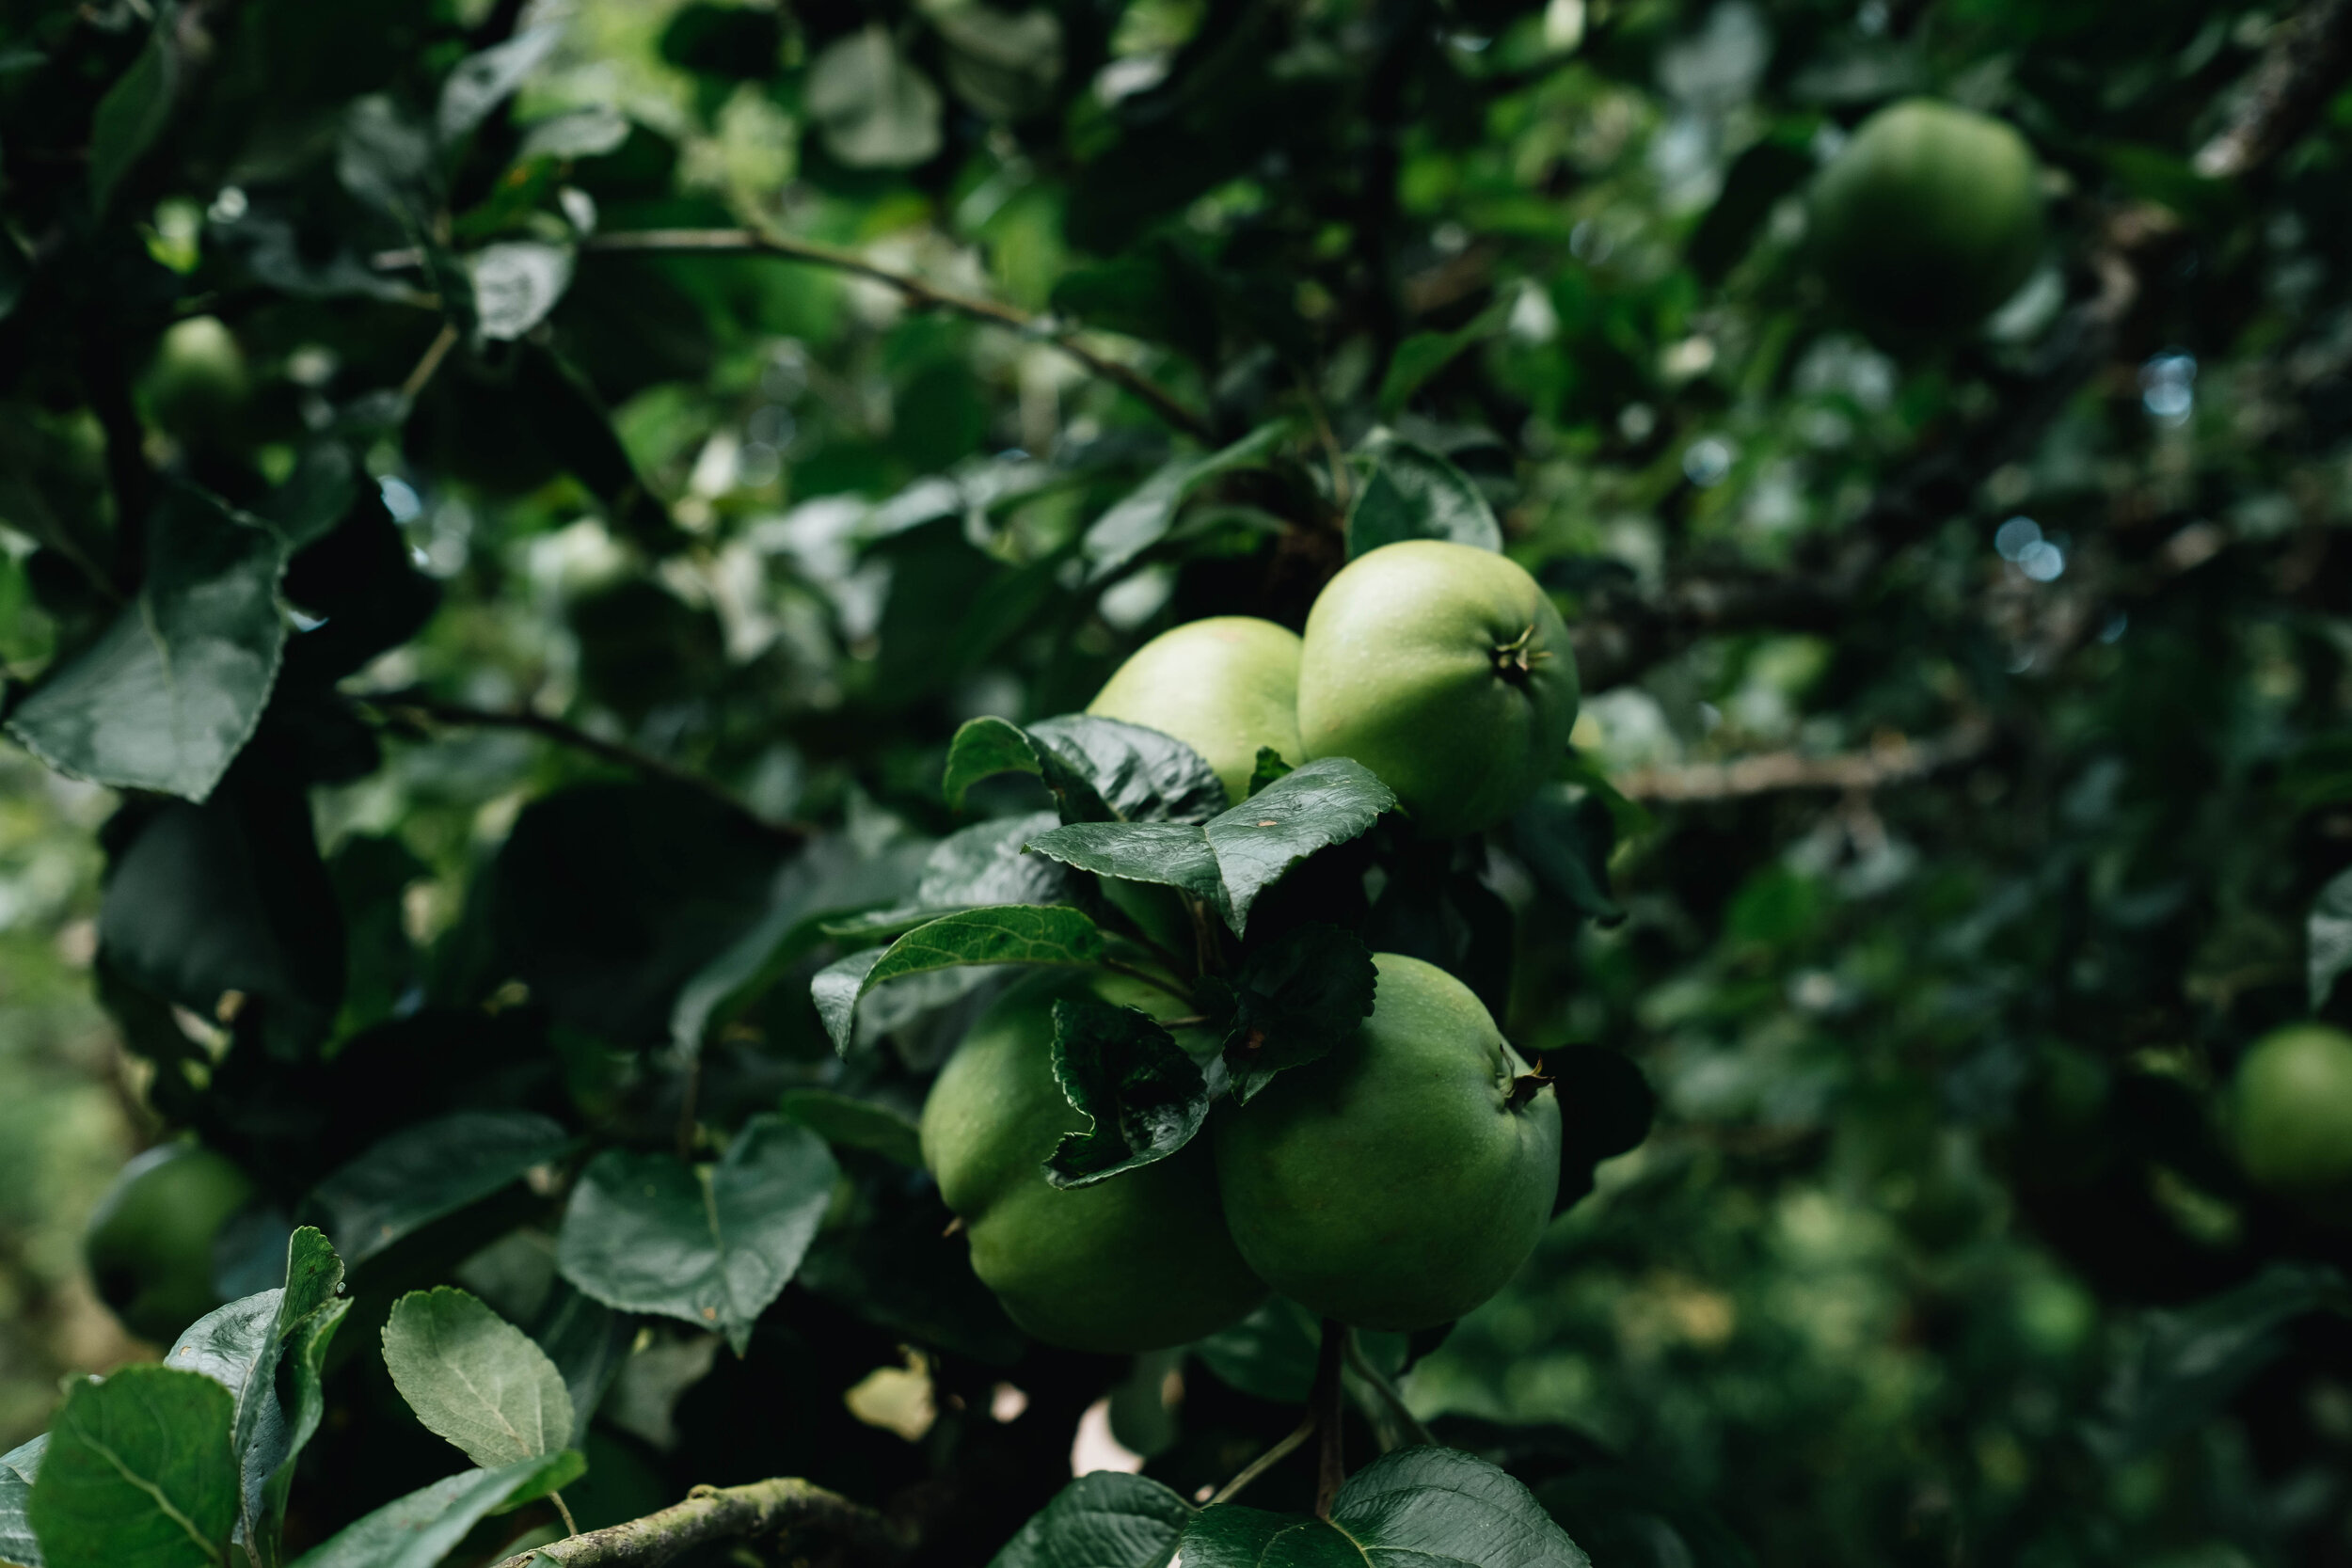 A close up shot of apples growing on the tree of Cambo Country House Estate.